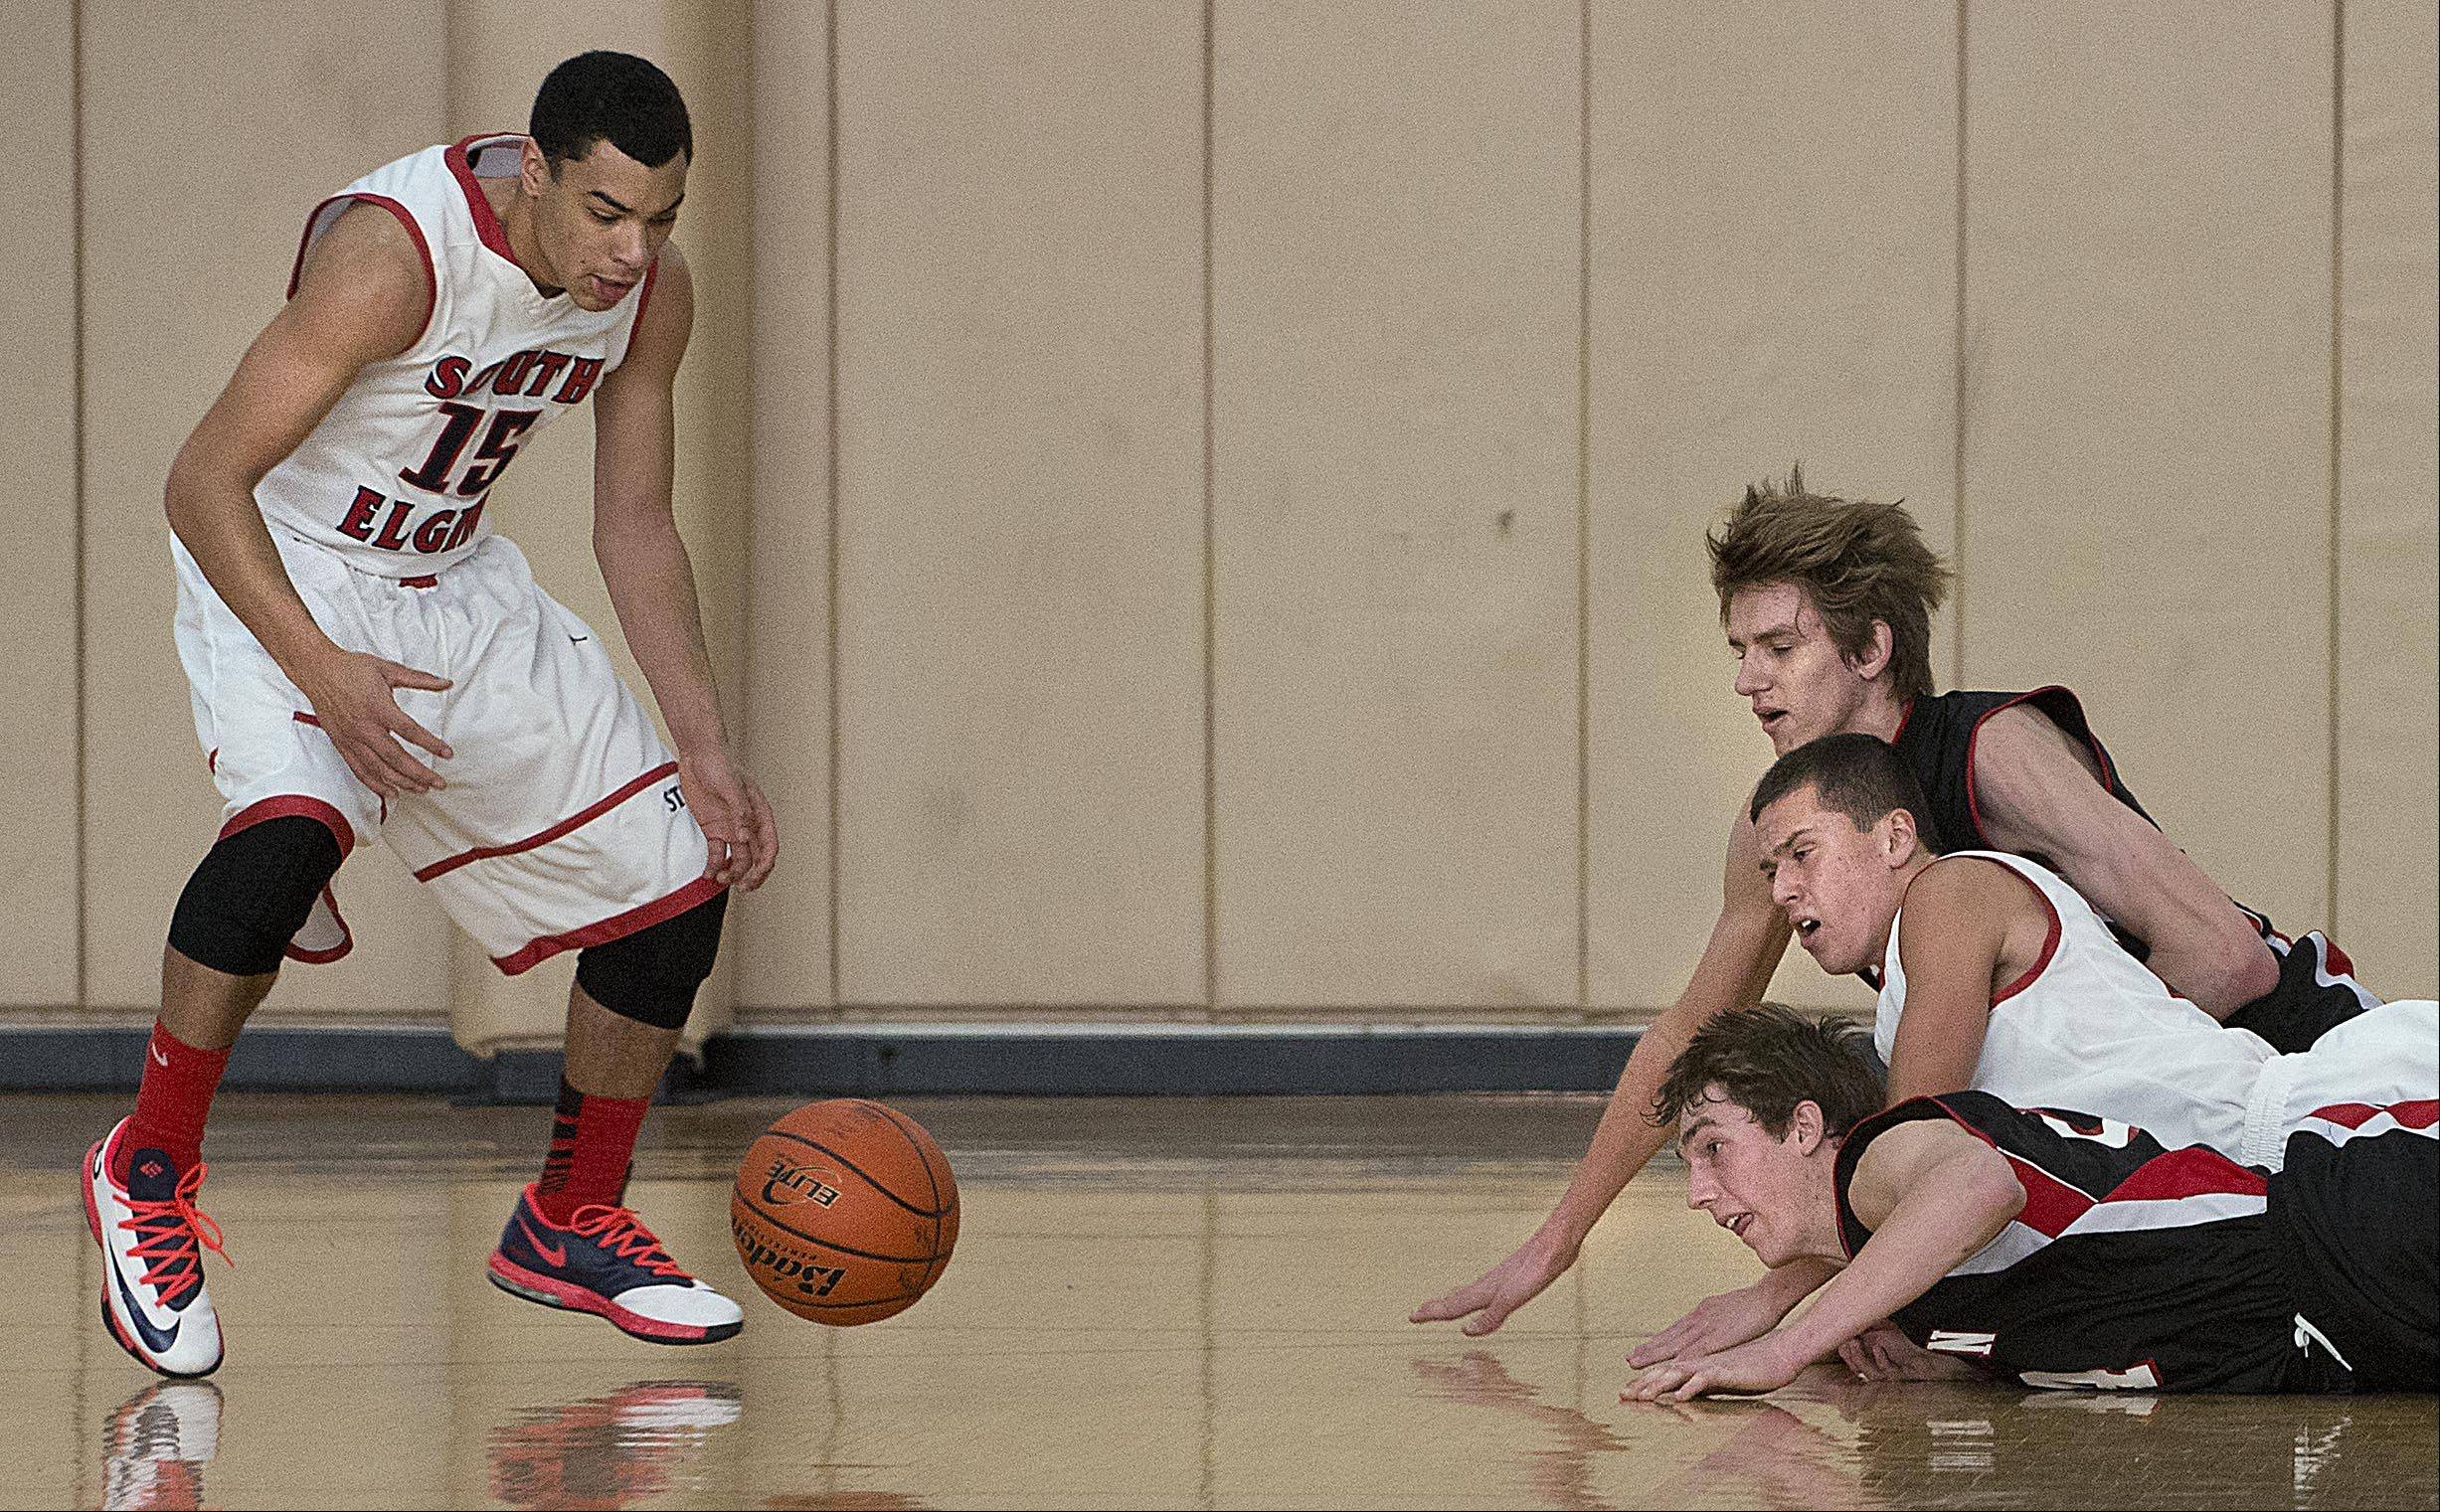 Barrington�s Rapolas Ivanauskas and West McDonald and South Elgin�s Matt McClure watch as South Elgin�s Matthew Smith reaches for a loose ball Monday at the Hinkle Holiday Classic at Jacobs High School in Algonquin.